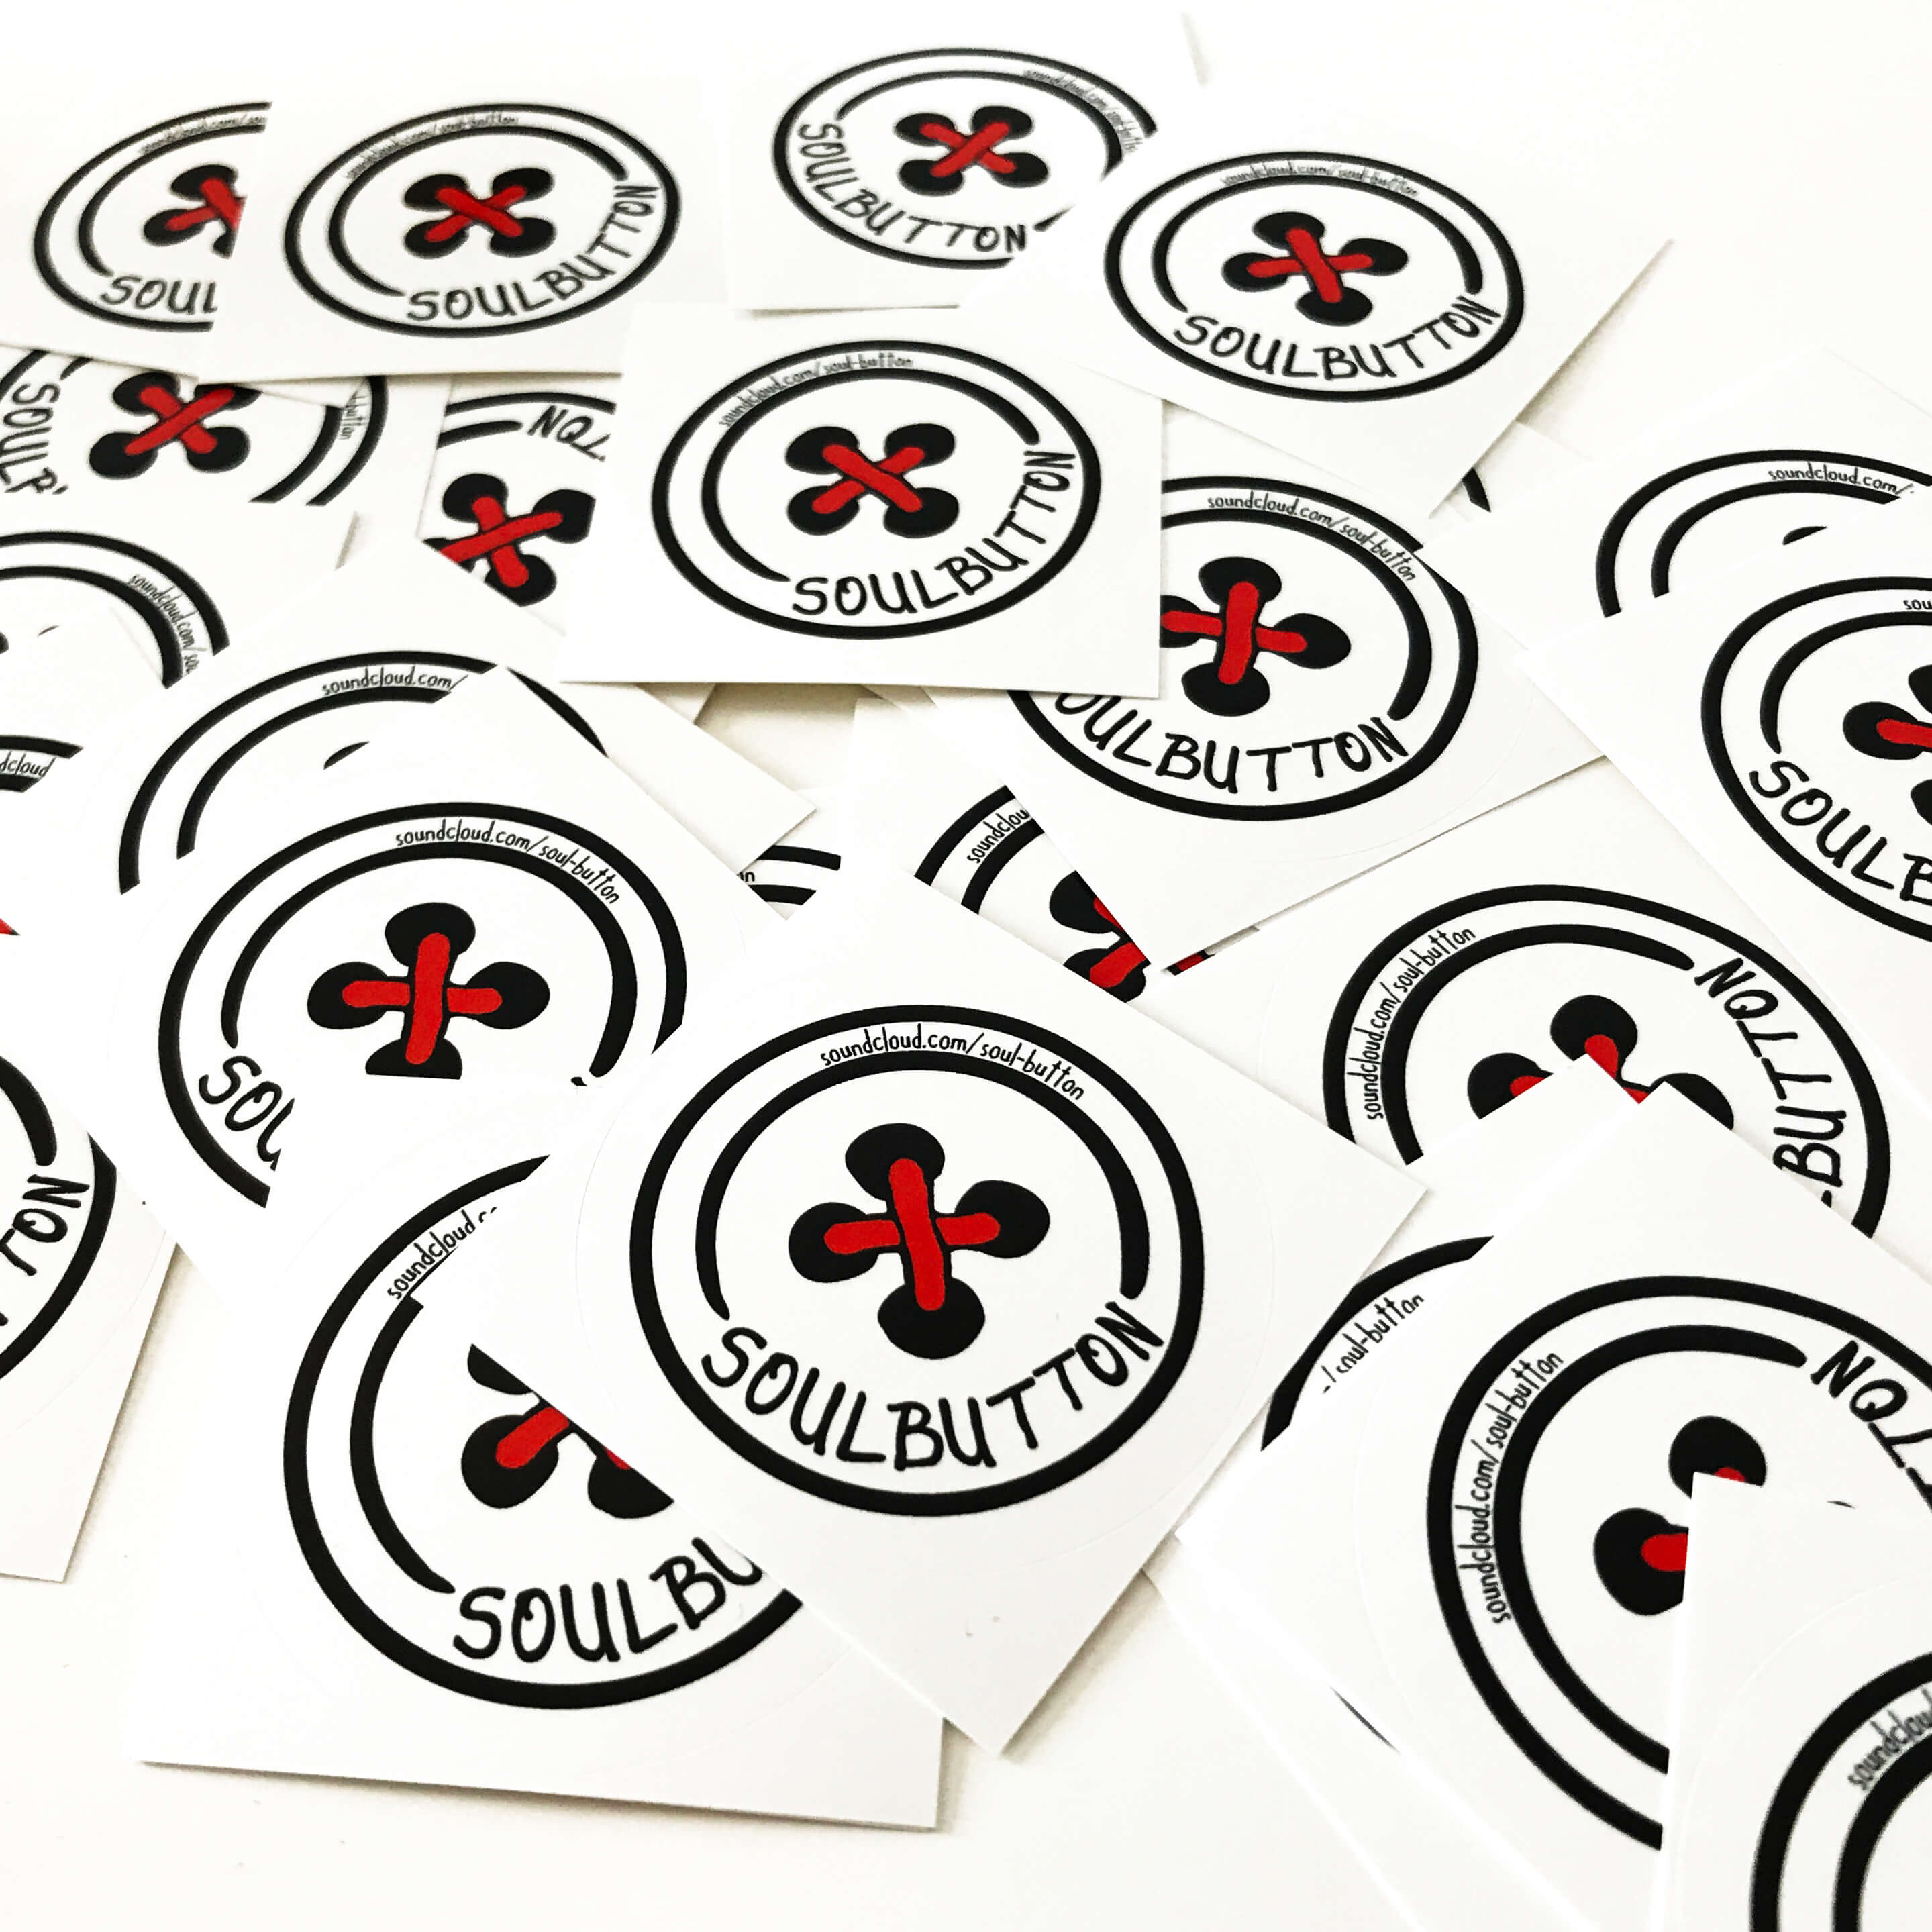 soul button stickers